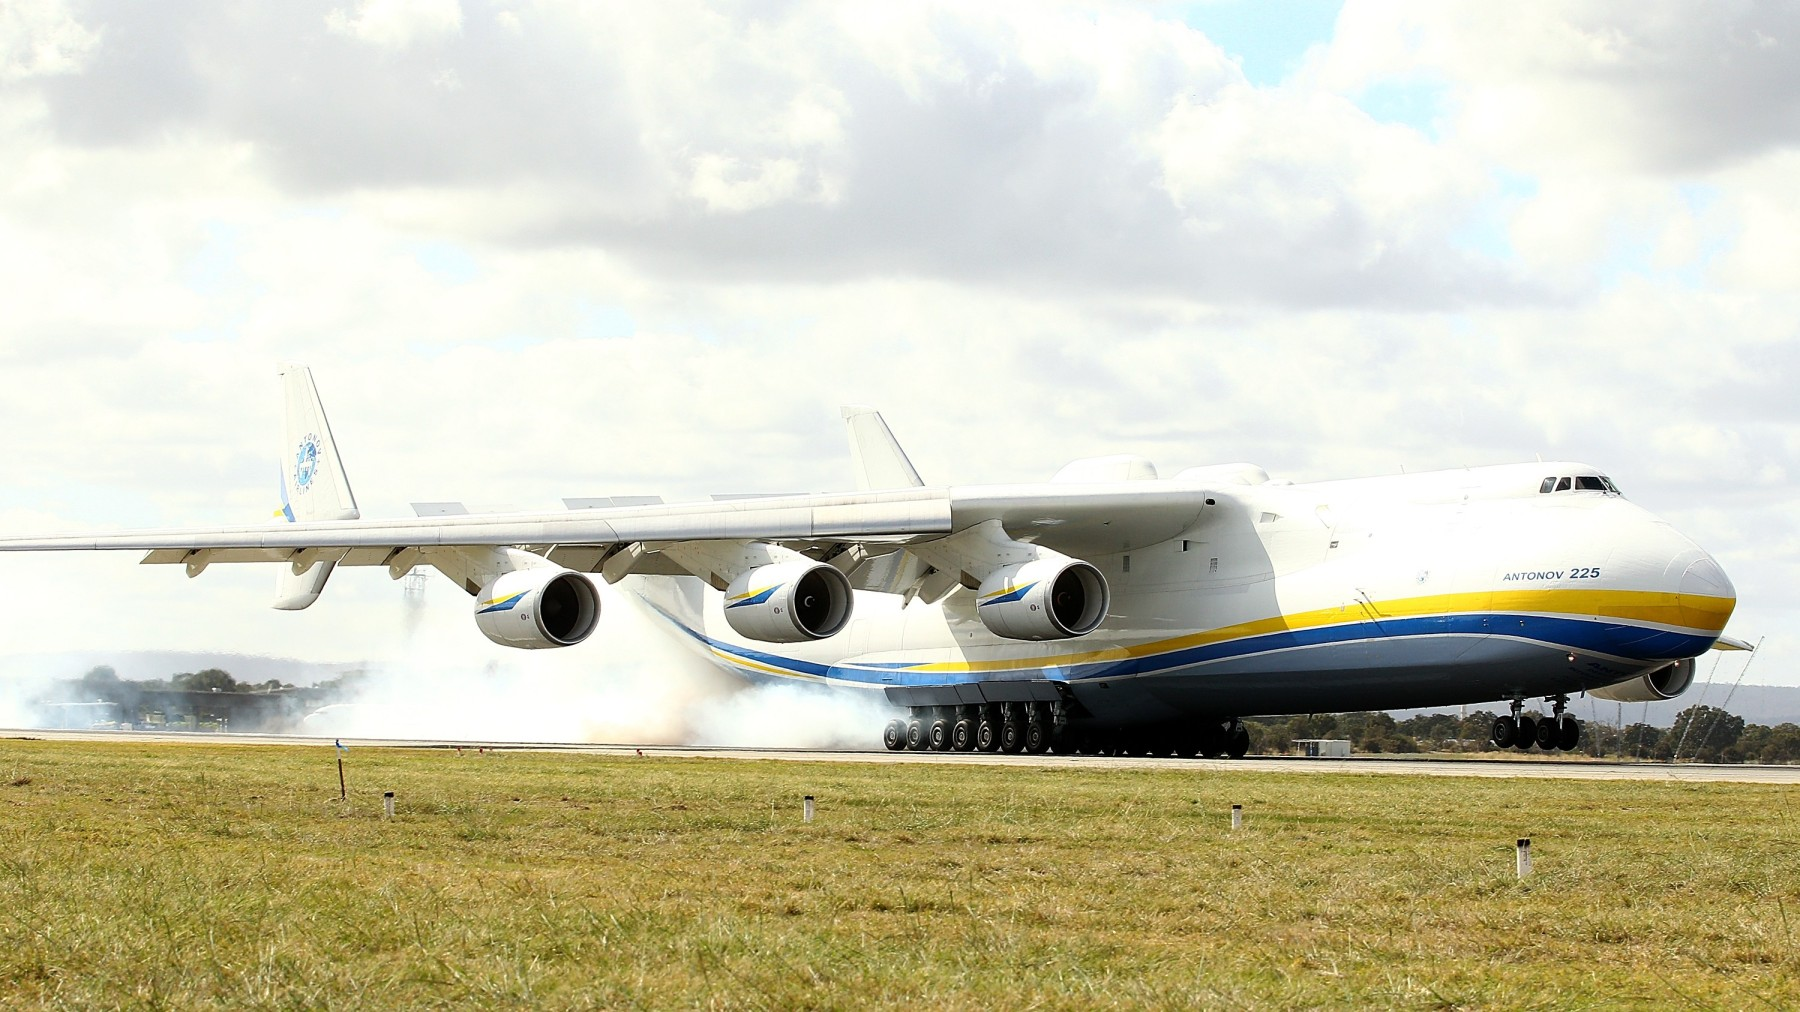 PERTH, AUSTRALIA - MAY 15:  The Antonov AN-225 Mriya lands at Perth International airport on May 15, 2016 in Perth, Australia. The Ukrainian cargo plane is 84 metres long and has a wingspan of 88.4 metres and is in Perth to  (Photo by Paul Kane/Getty Images)